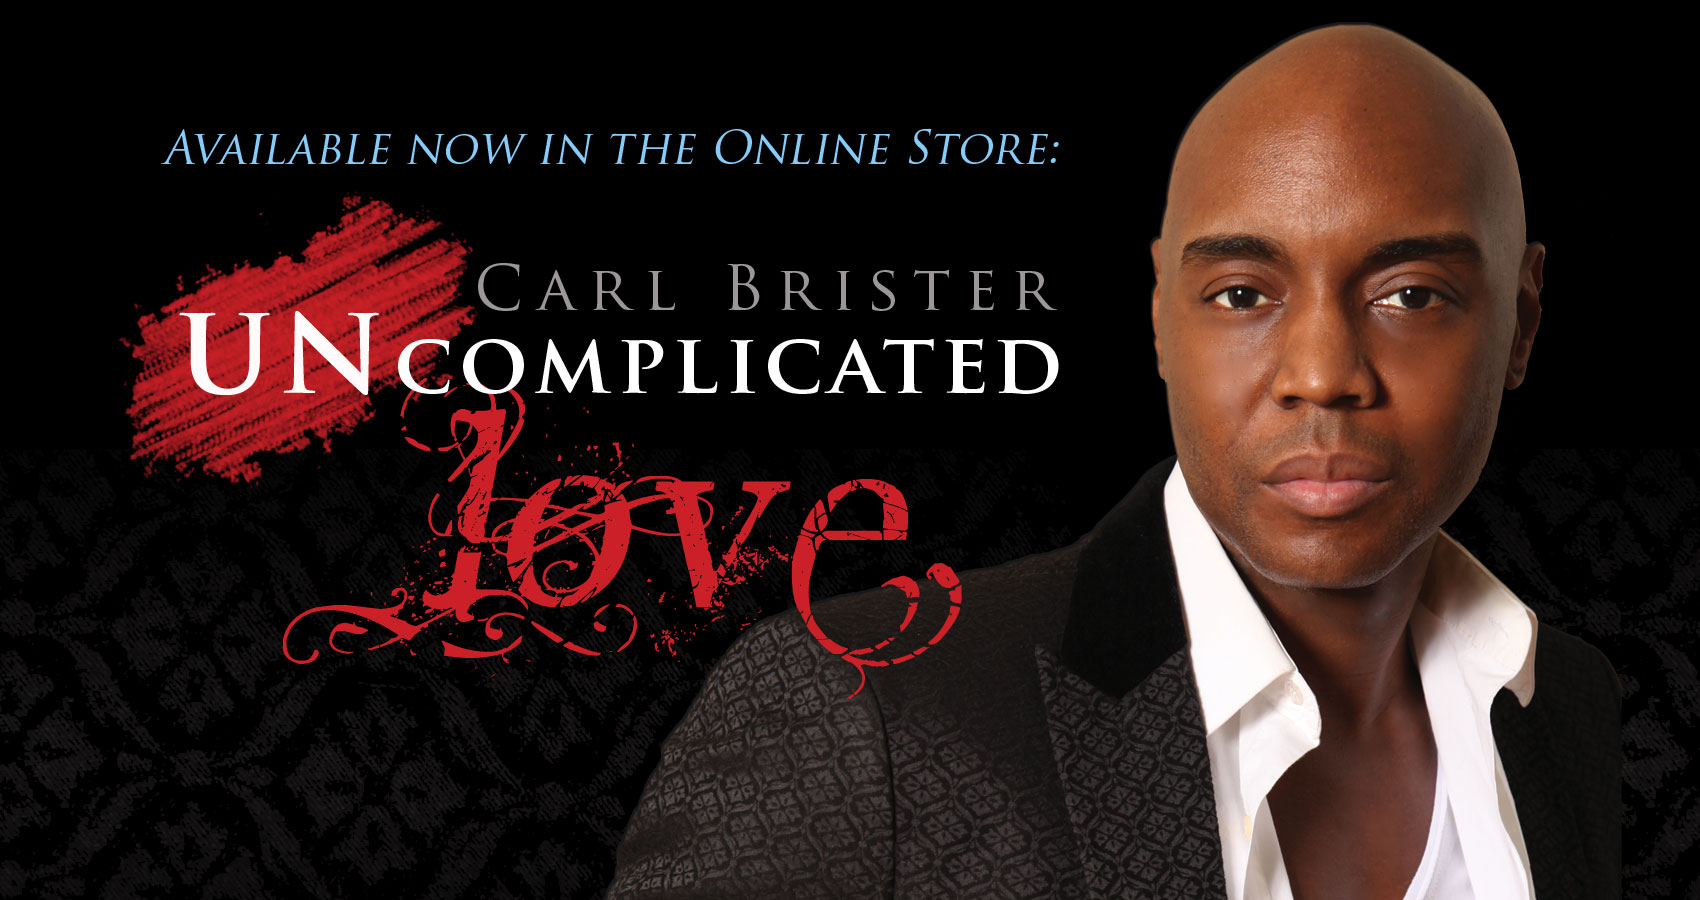 Available now in the Online Store - UNCOMPLICATED LOVE